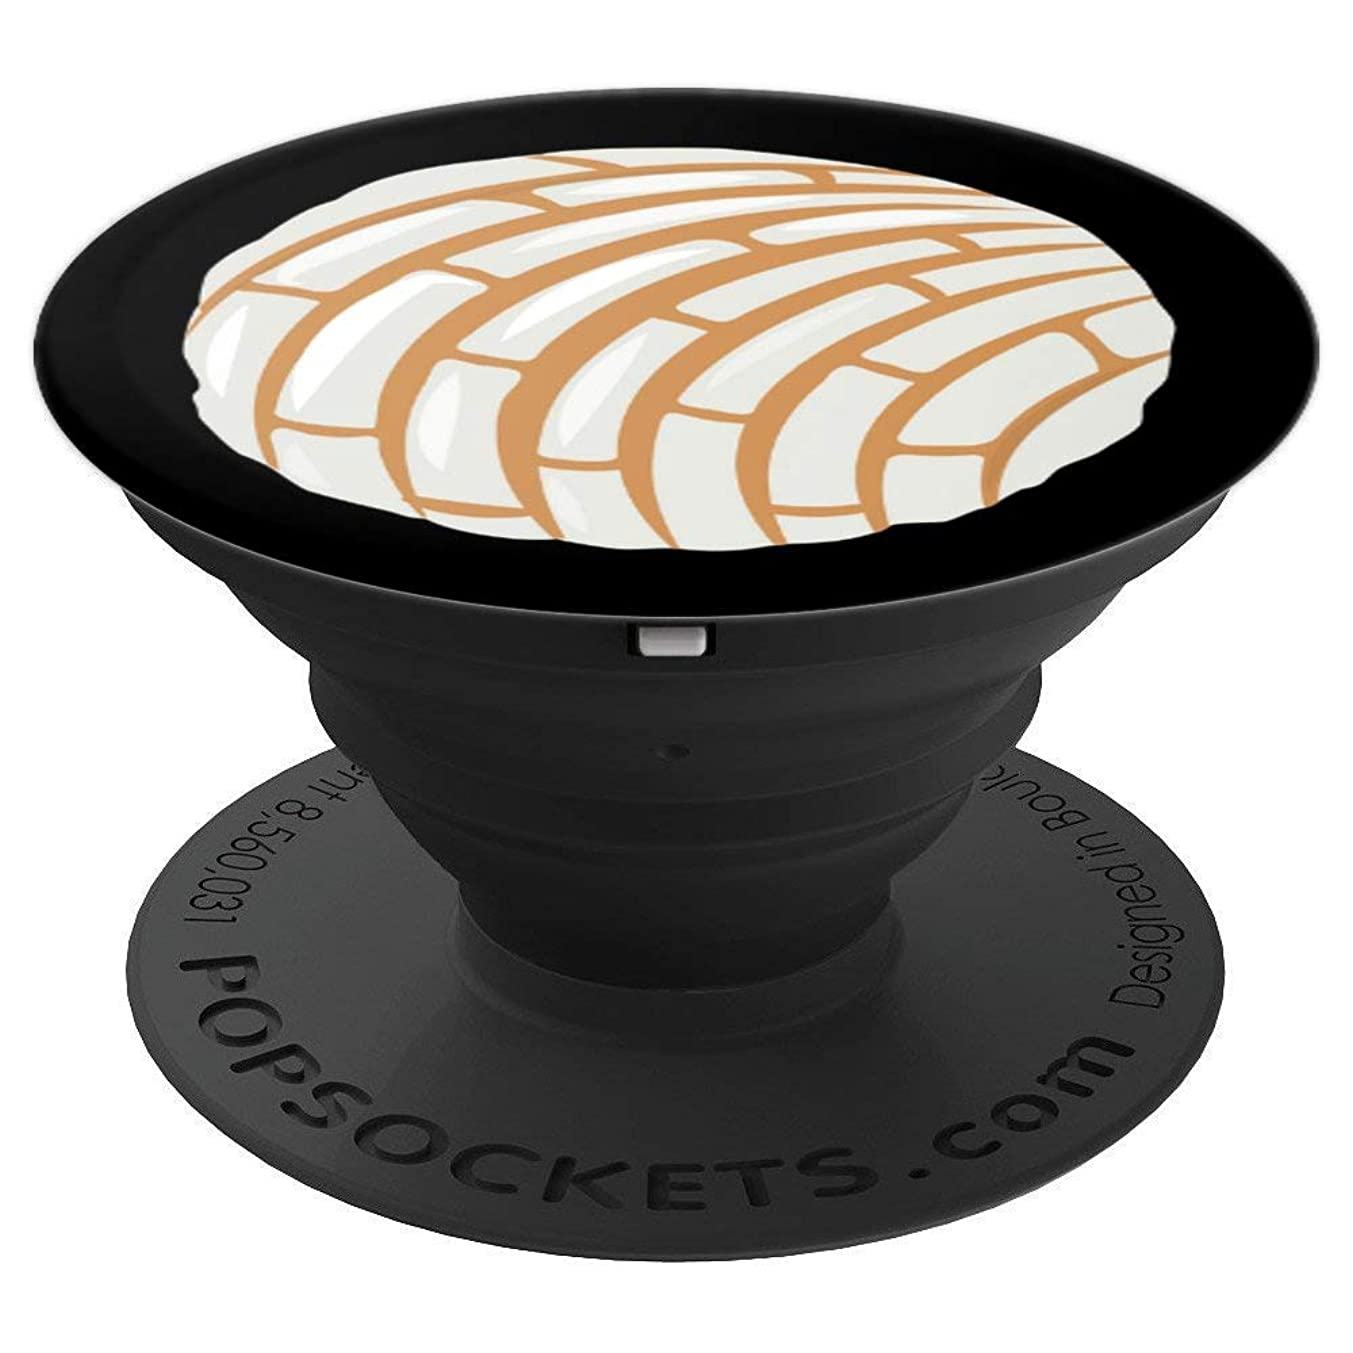 White Concha Pan Dulce - PopSockets Grip and Stand for Phones and Tablets